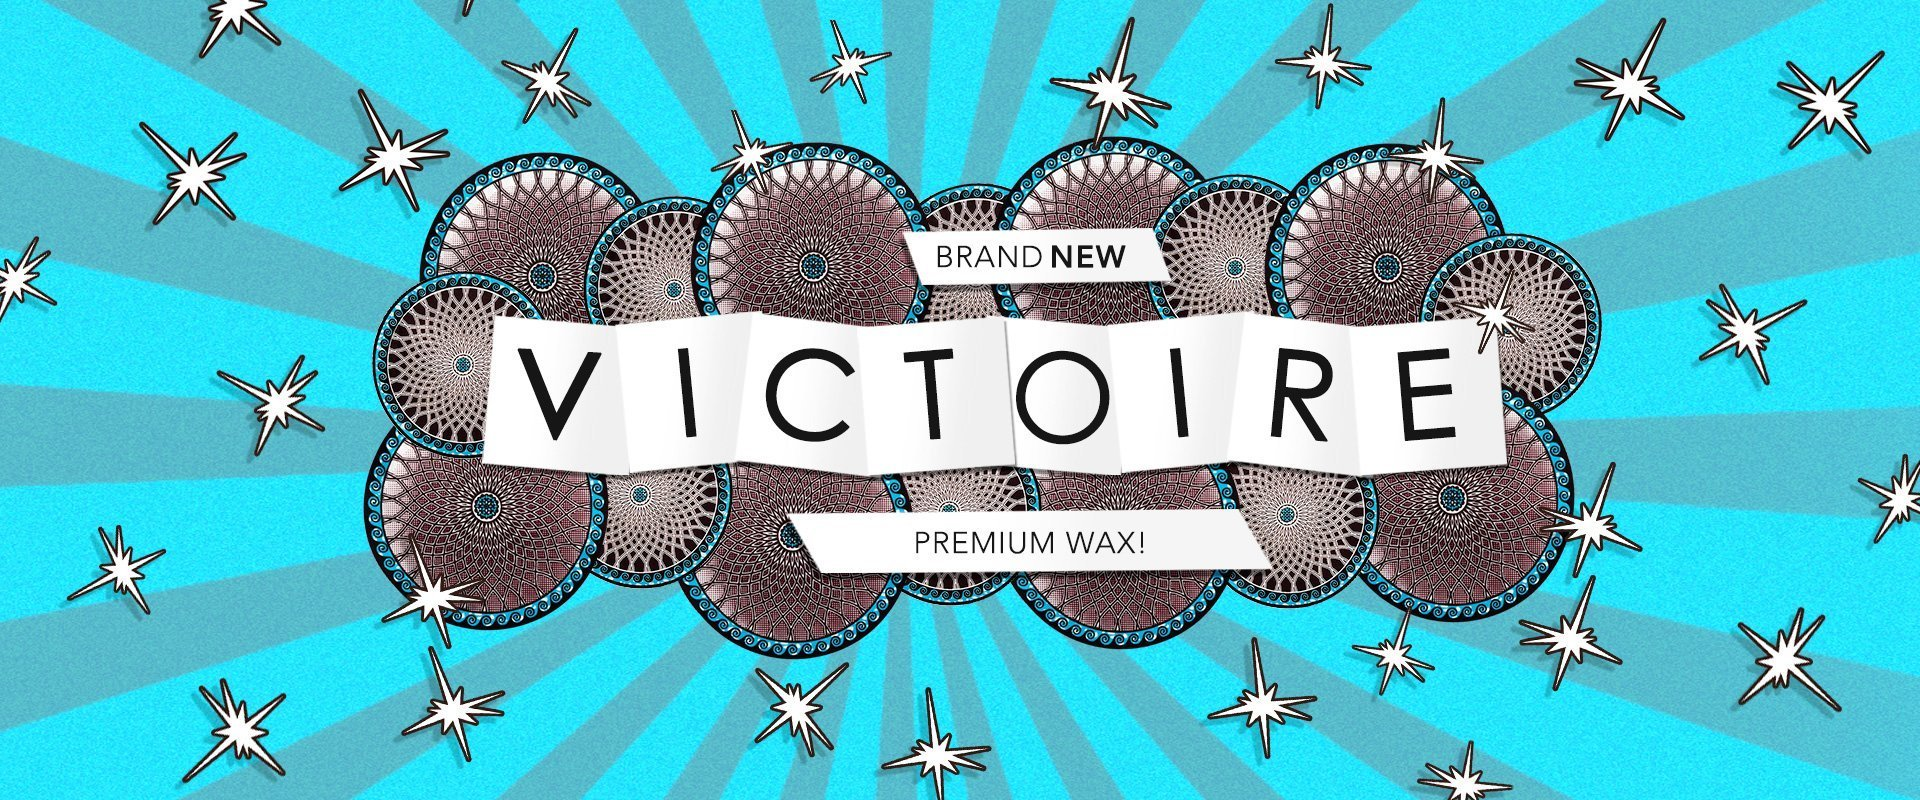 Brand New Victorie Premium Wax Fabric, Exclusive to Hilton Textiles